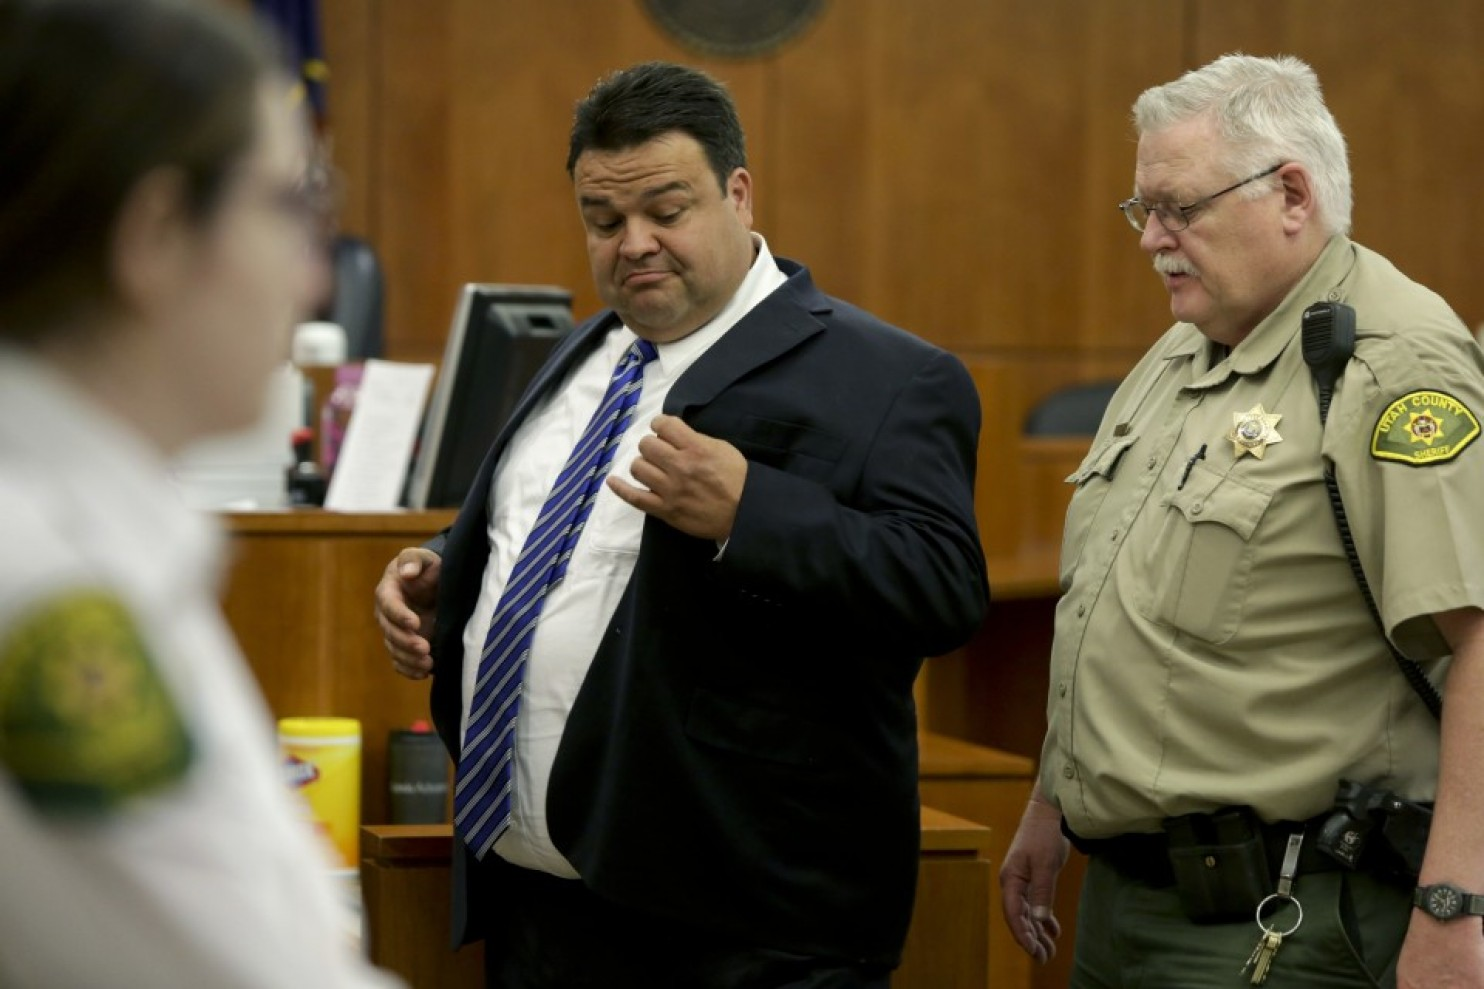 Keith Robert Vallejo leaves the courtroom, in Provo, Utah, on March 30. The former Mormon bishop has been convicted of 11 sexual assault charges. (Dominic Valente/Daily Herald via Associated Press)